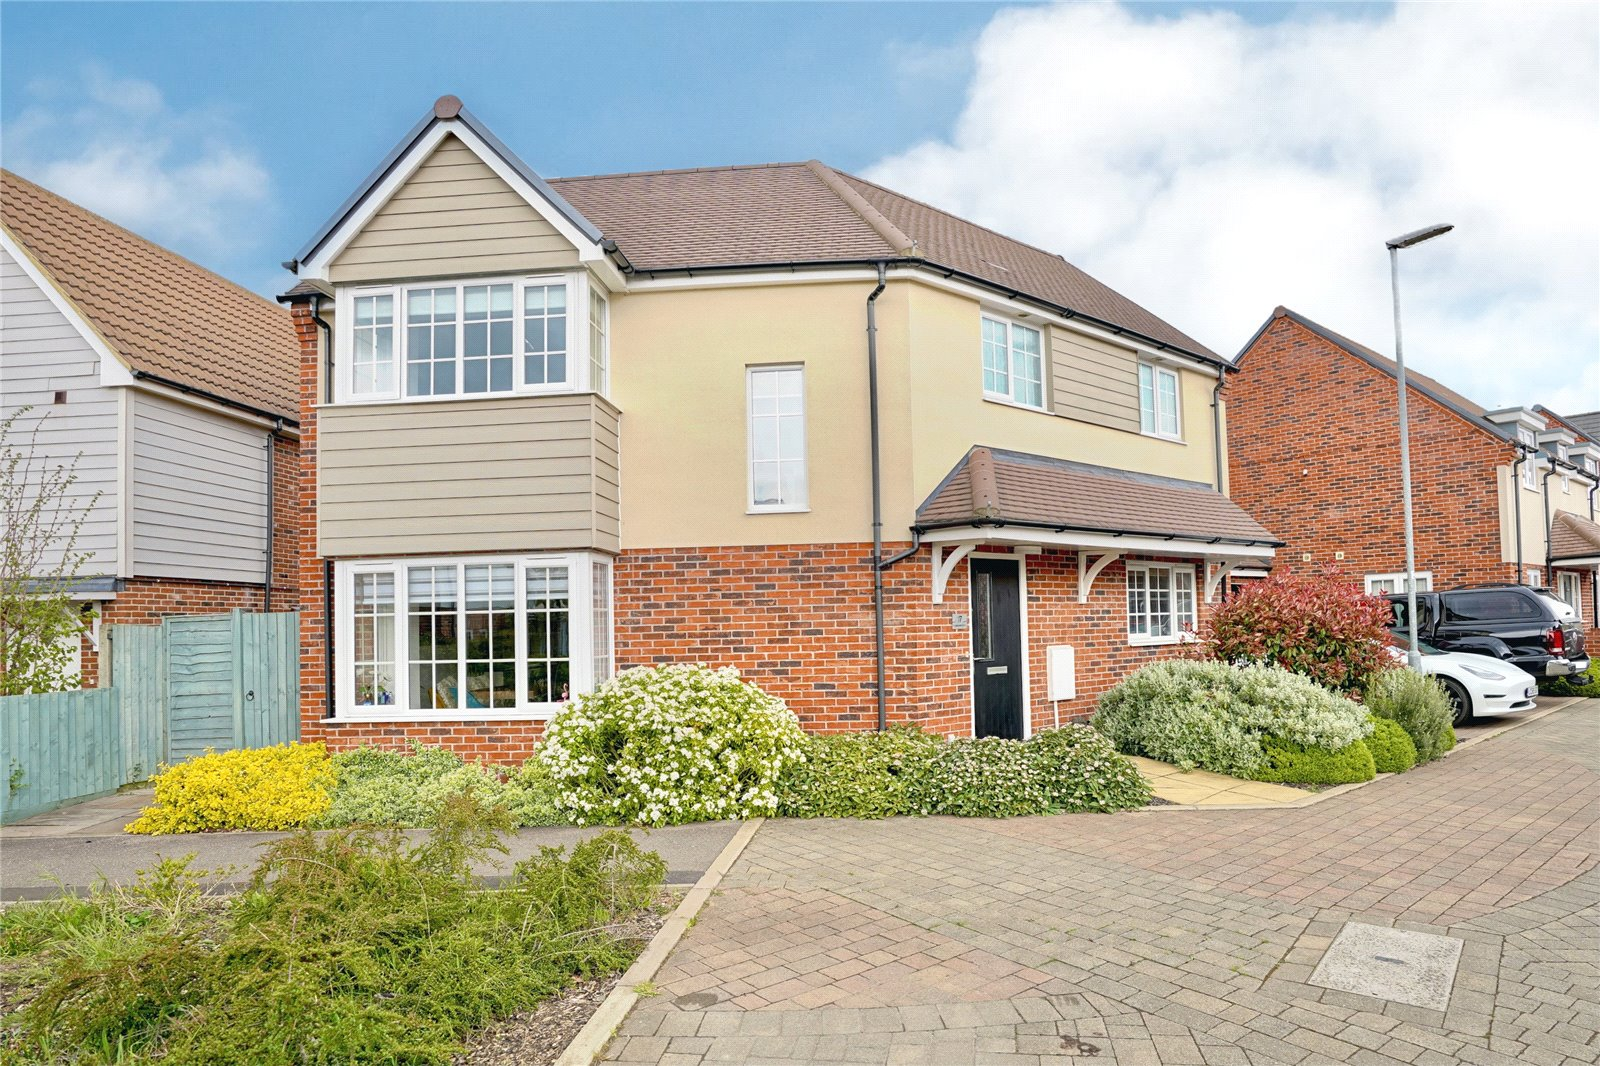 3 bed house for sale in Harvest Drive, St. Neots - Property Image 1